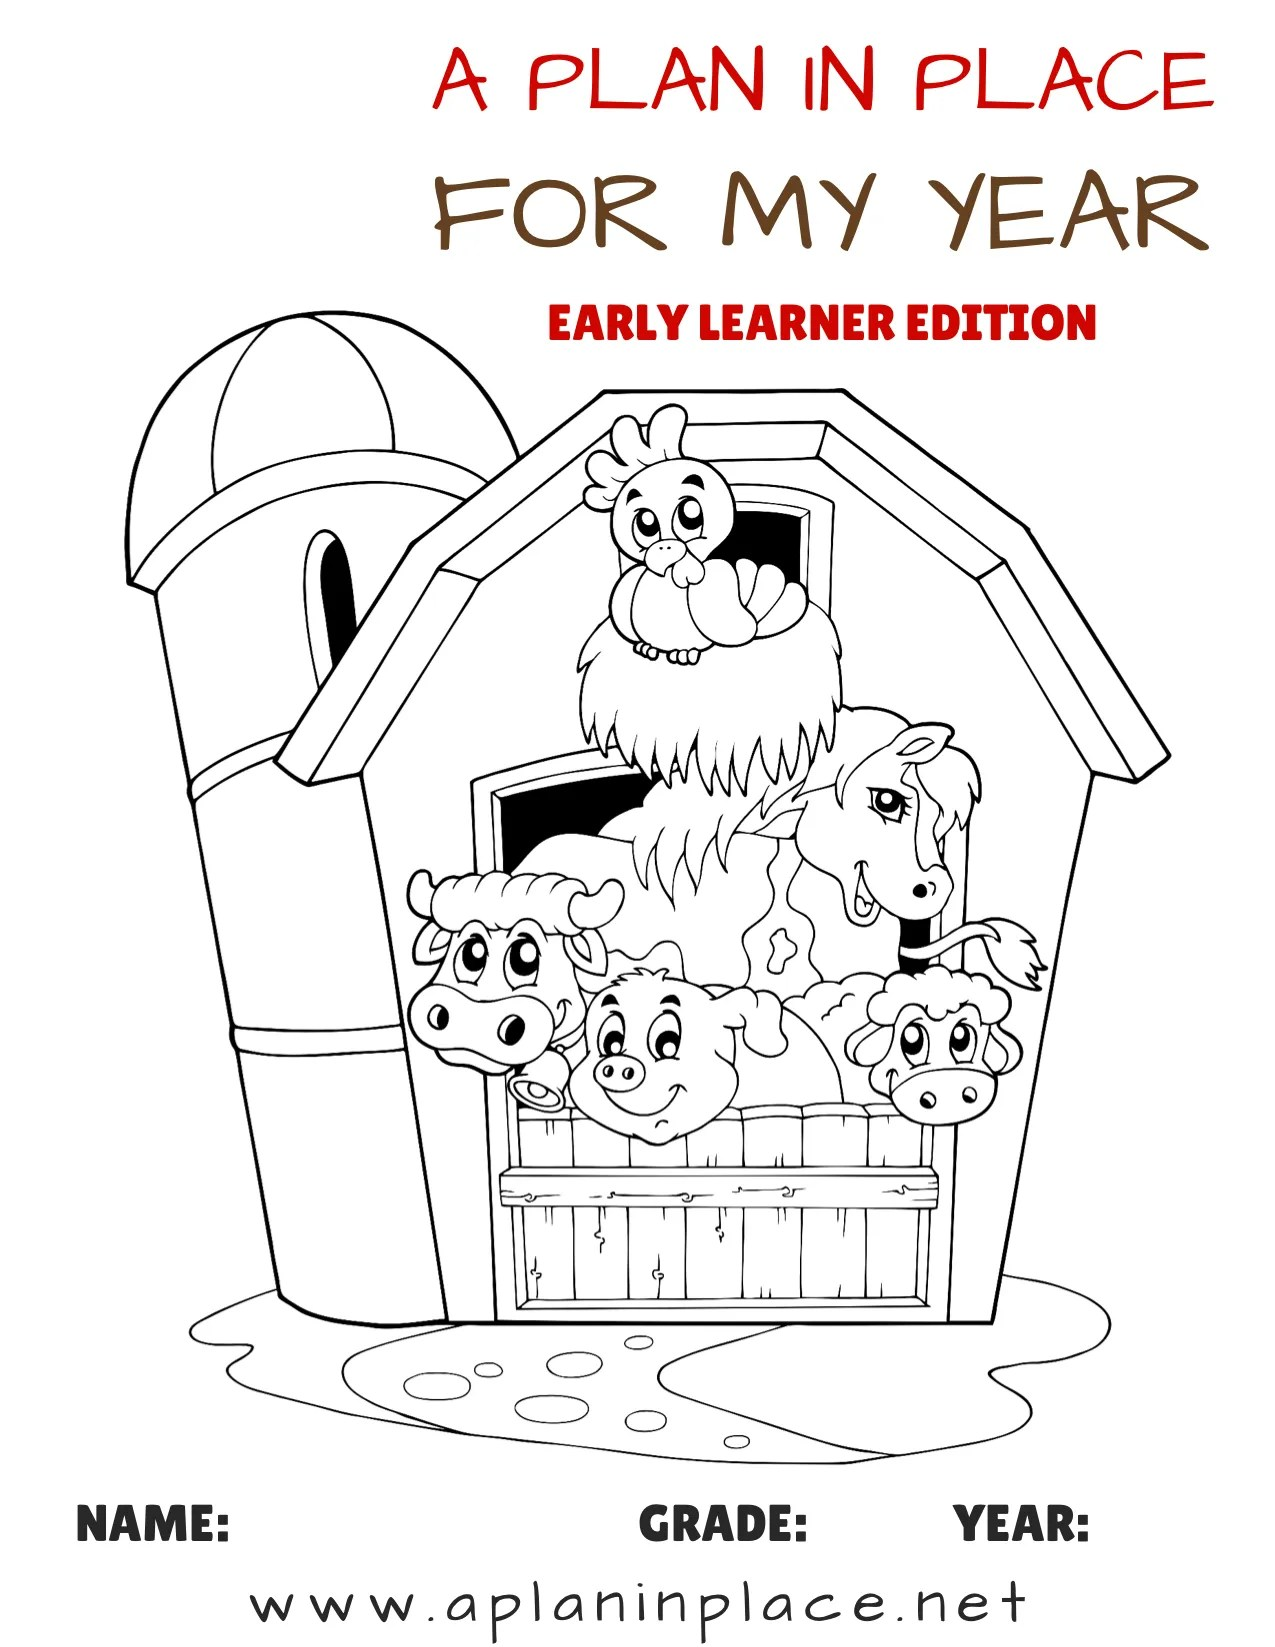 Early Learner Edition